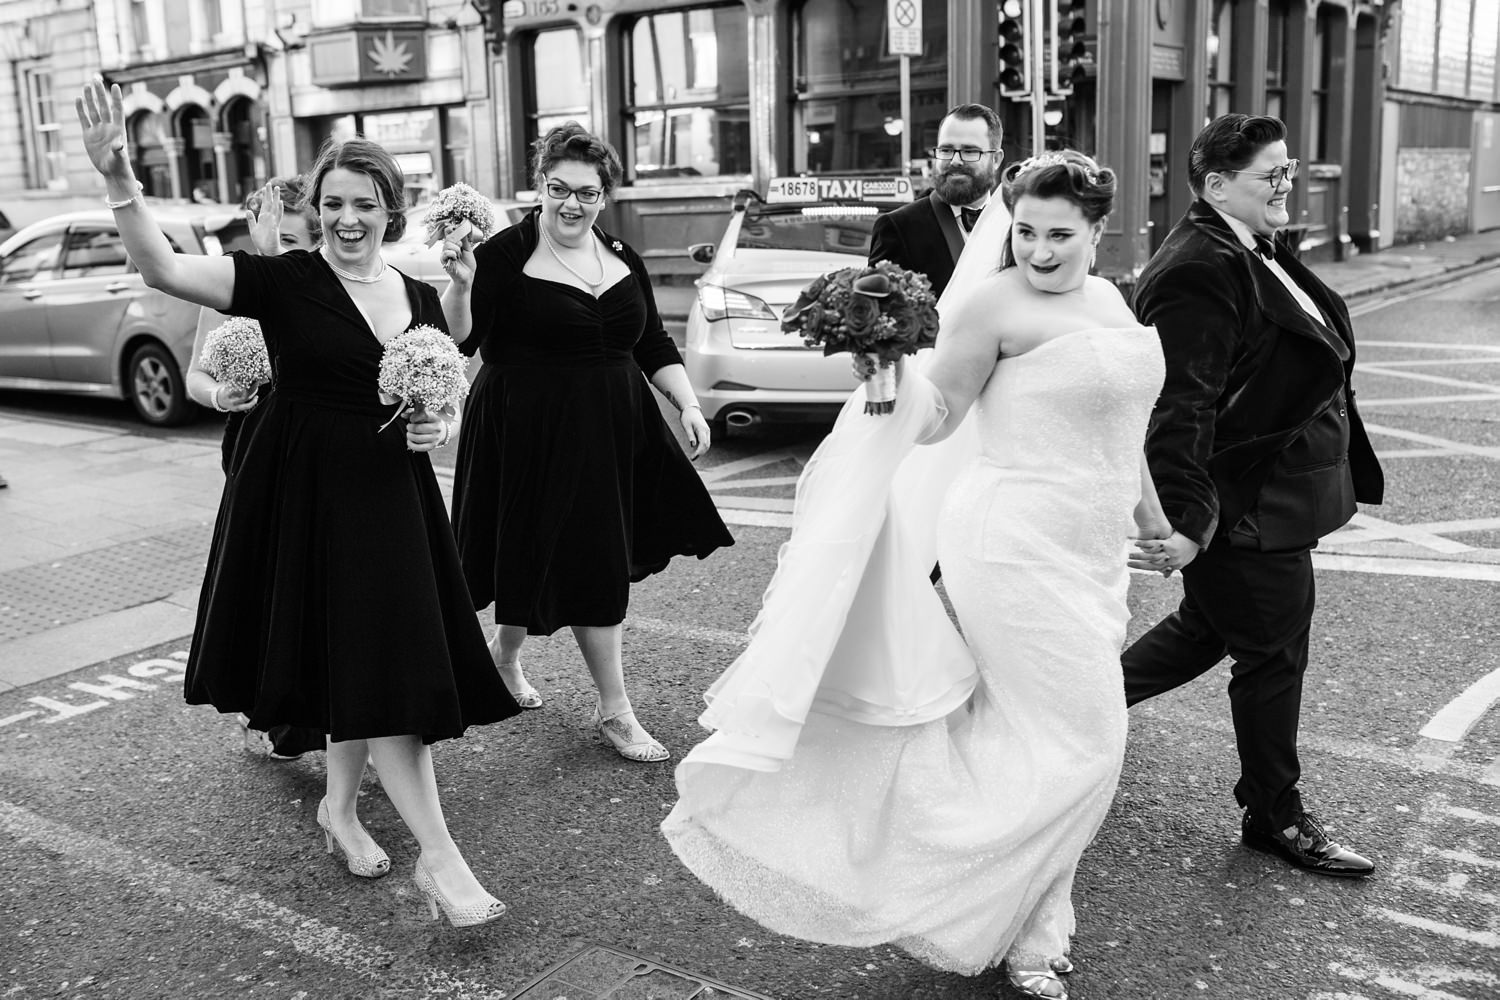 Elisha-Clarke-Photography-Dublin-City-Wedding_00300.jpg